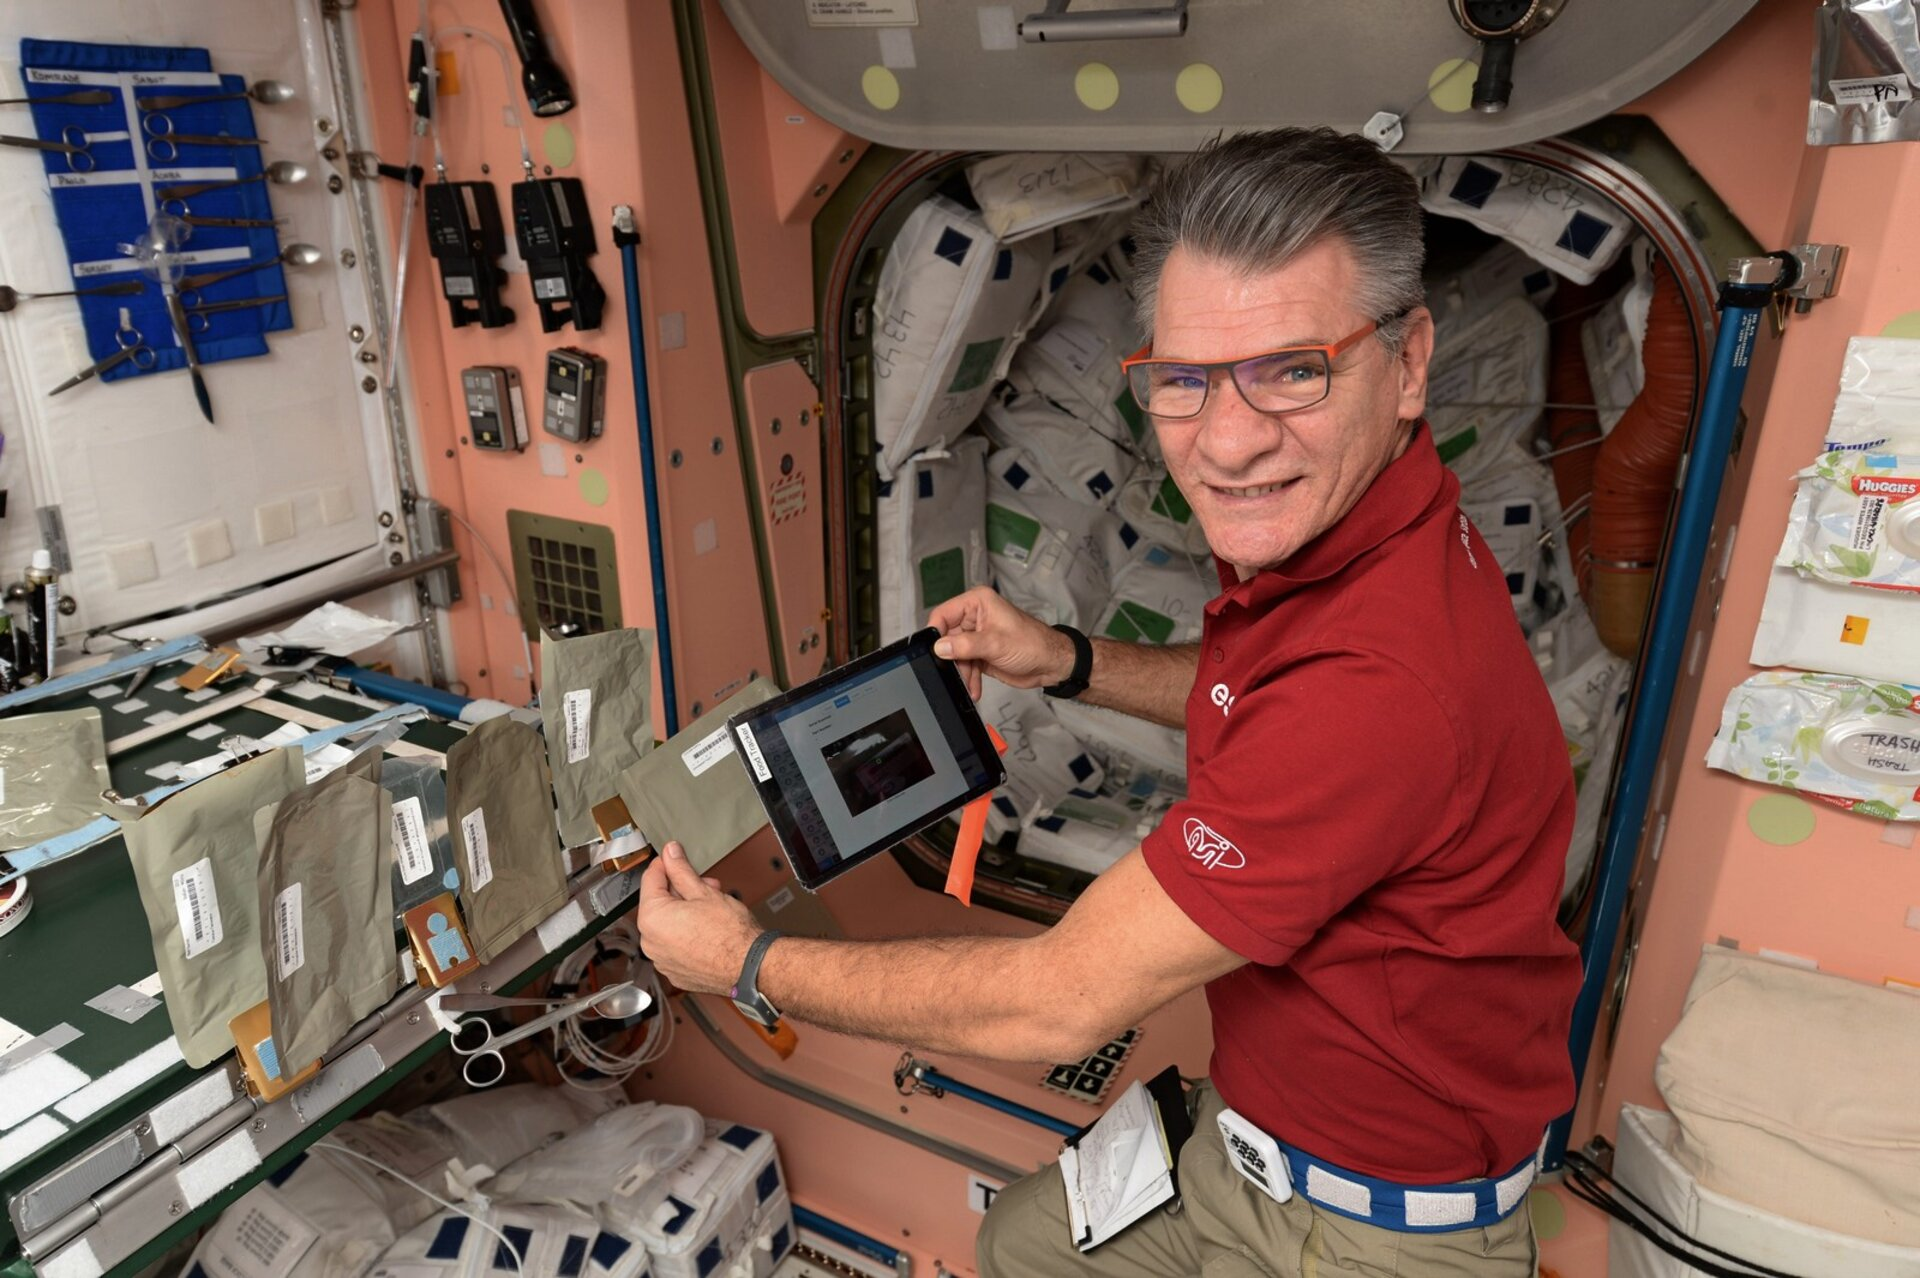 ESA astronaut Paolo Nespoli using EveryWear for nutrition monitoring